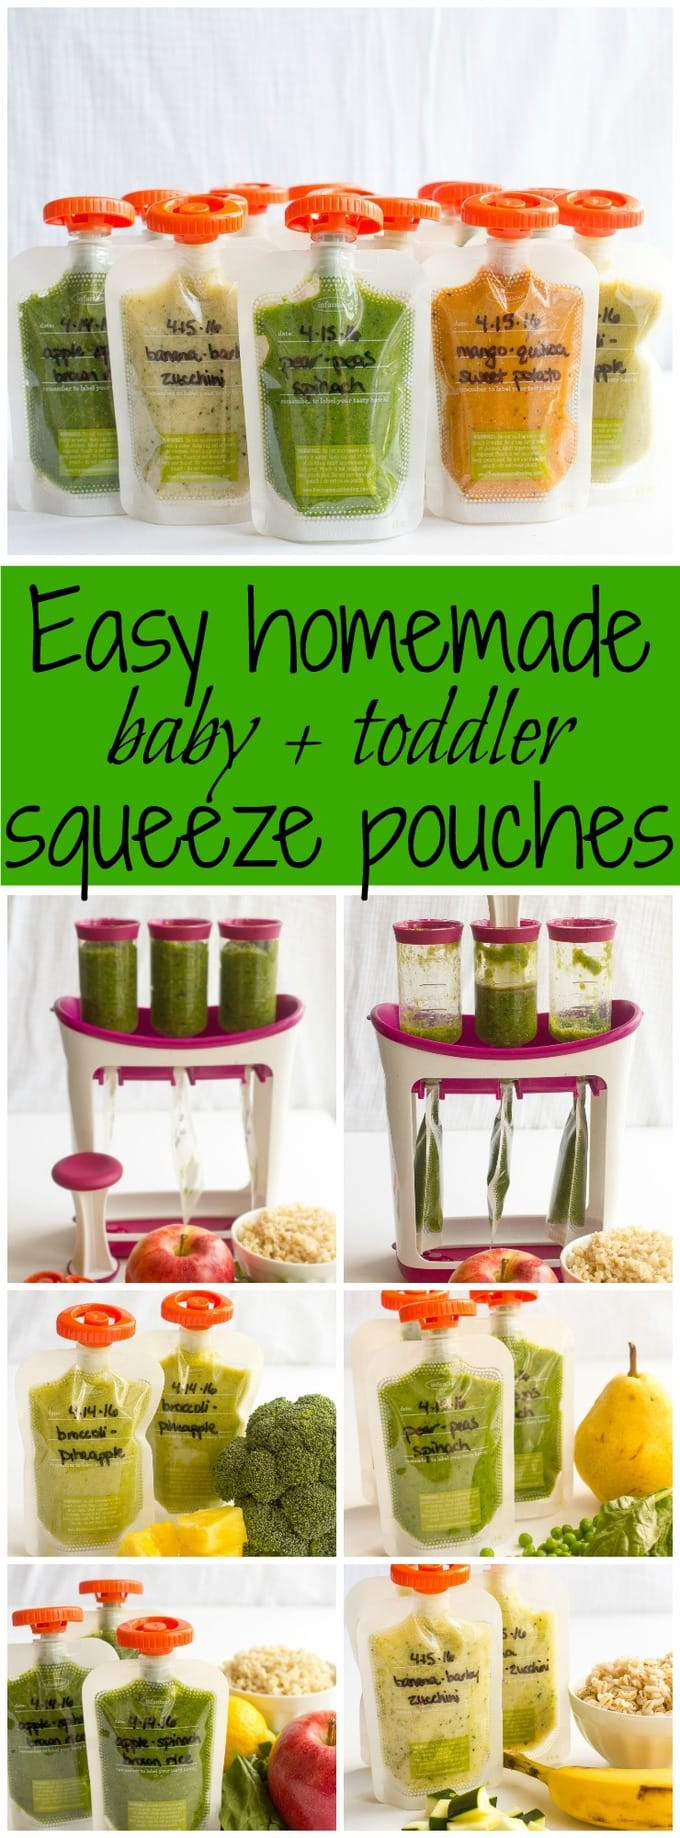 Best ideas about DIY Baby Food Pouches . Save or Pin Homemade baby food pouches how to and 5 recipes Family Now.